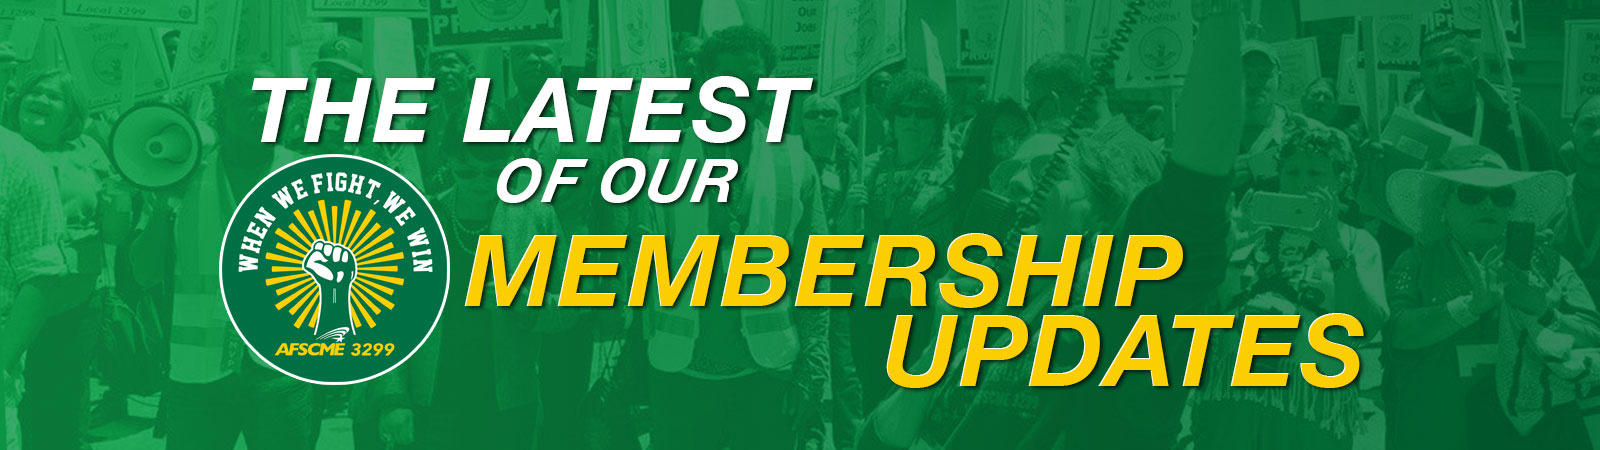 AFSCME 3299 - Latest of Our Membership Updates